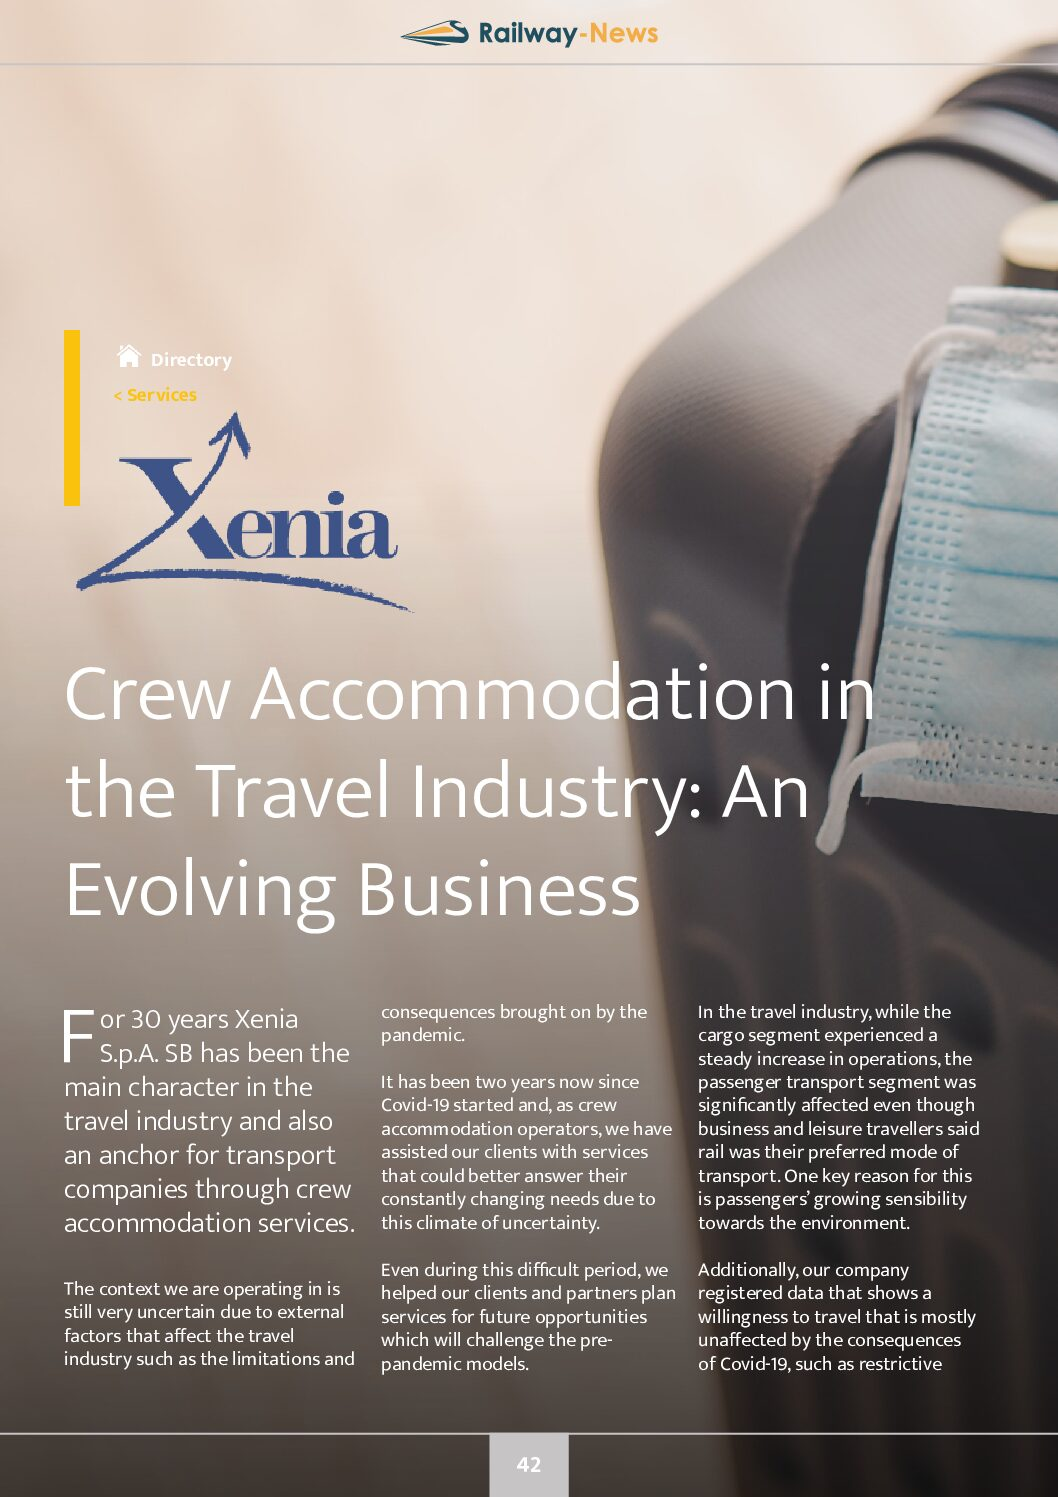 Crew Accommodation in the Travel Industry: An Evolving Business